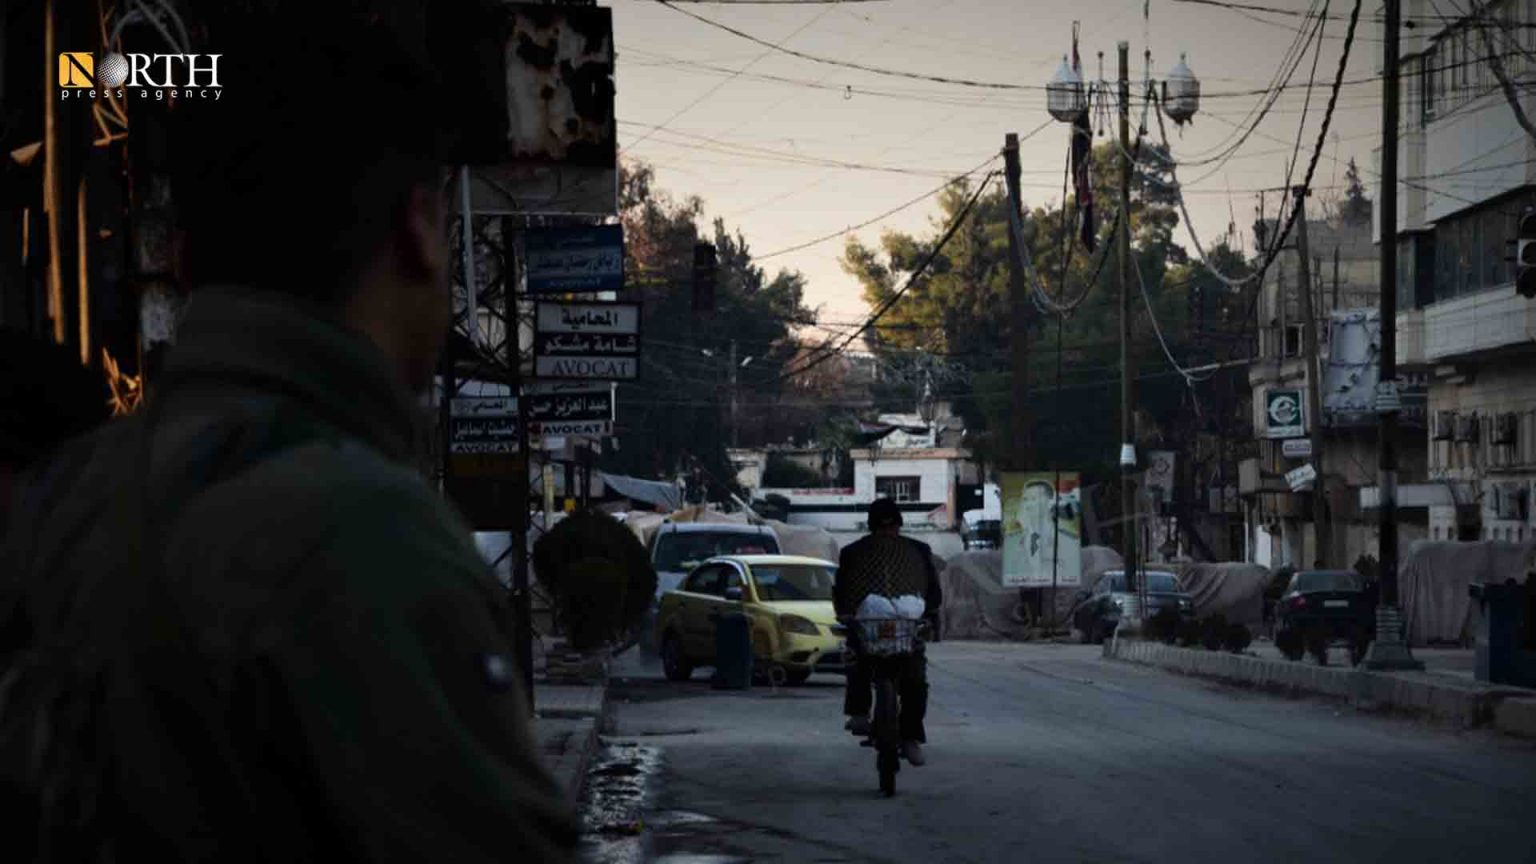 Qamishli, a member of the Internal Security Forces (Asayish) opposite to a Syrian government checkpoint – North Press